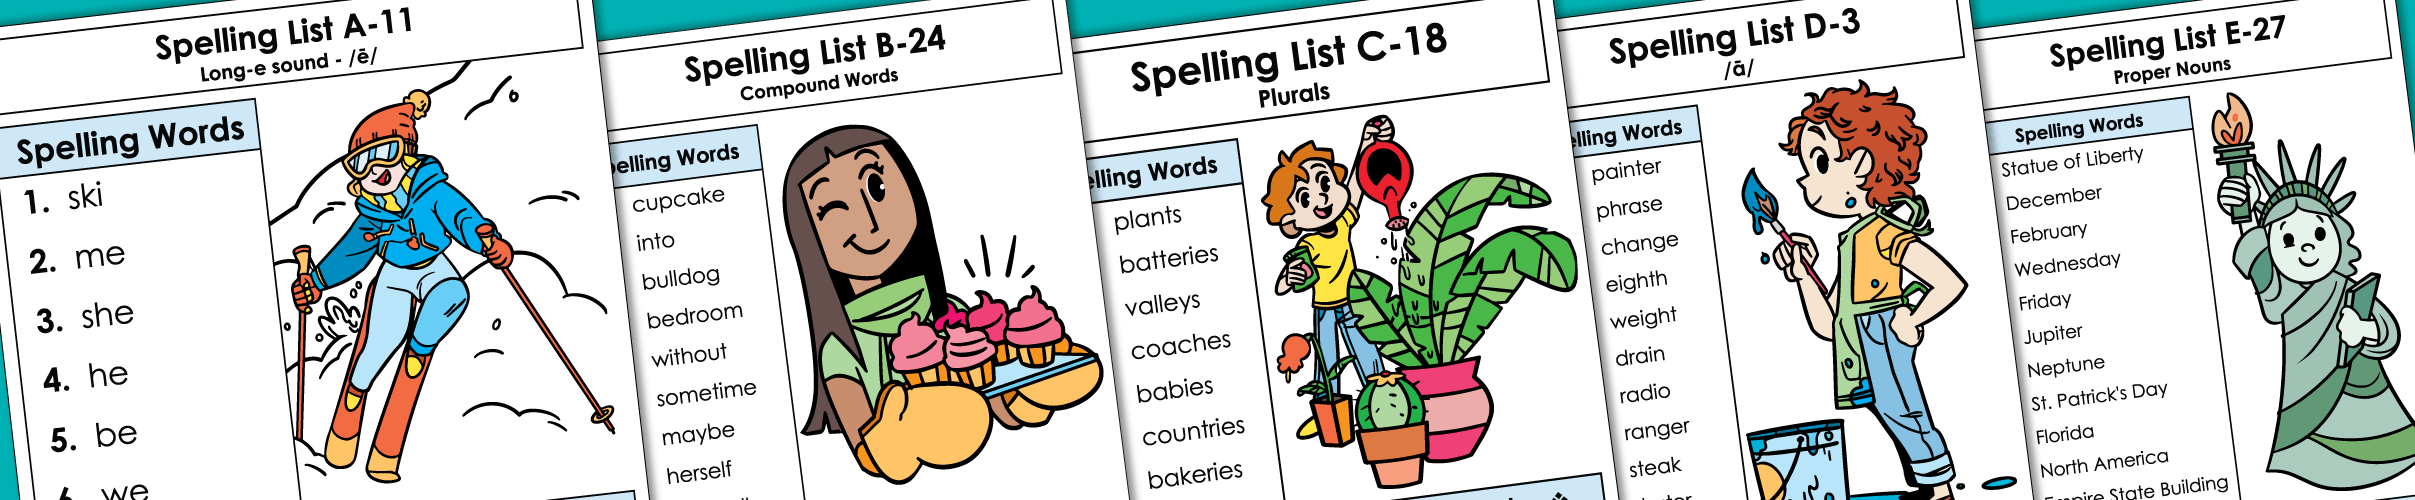 Spelling Lists and Worksheets